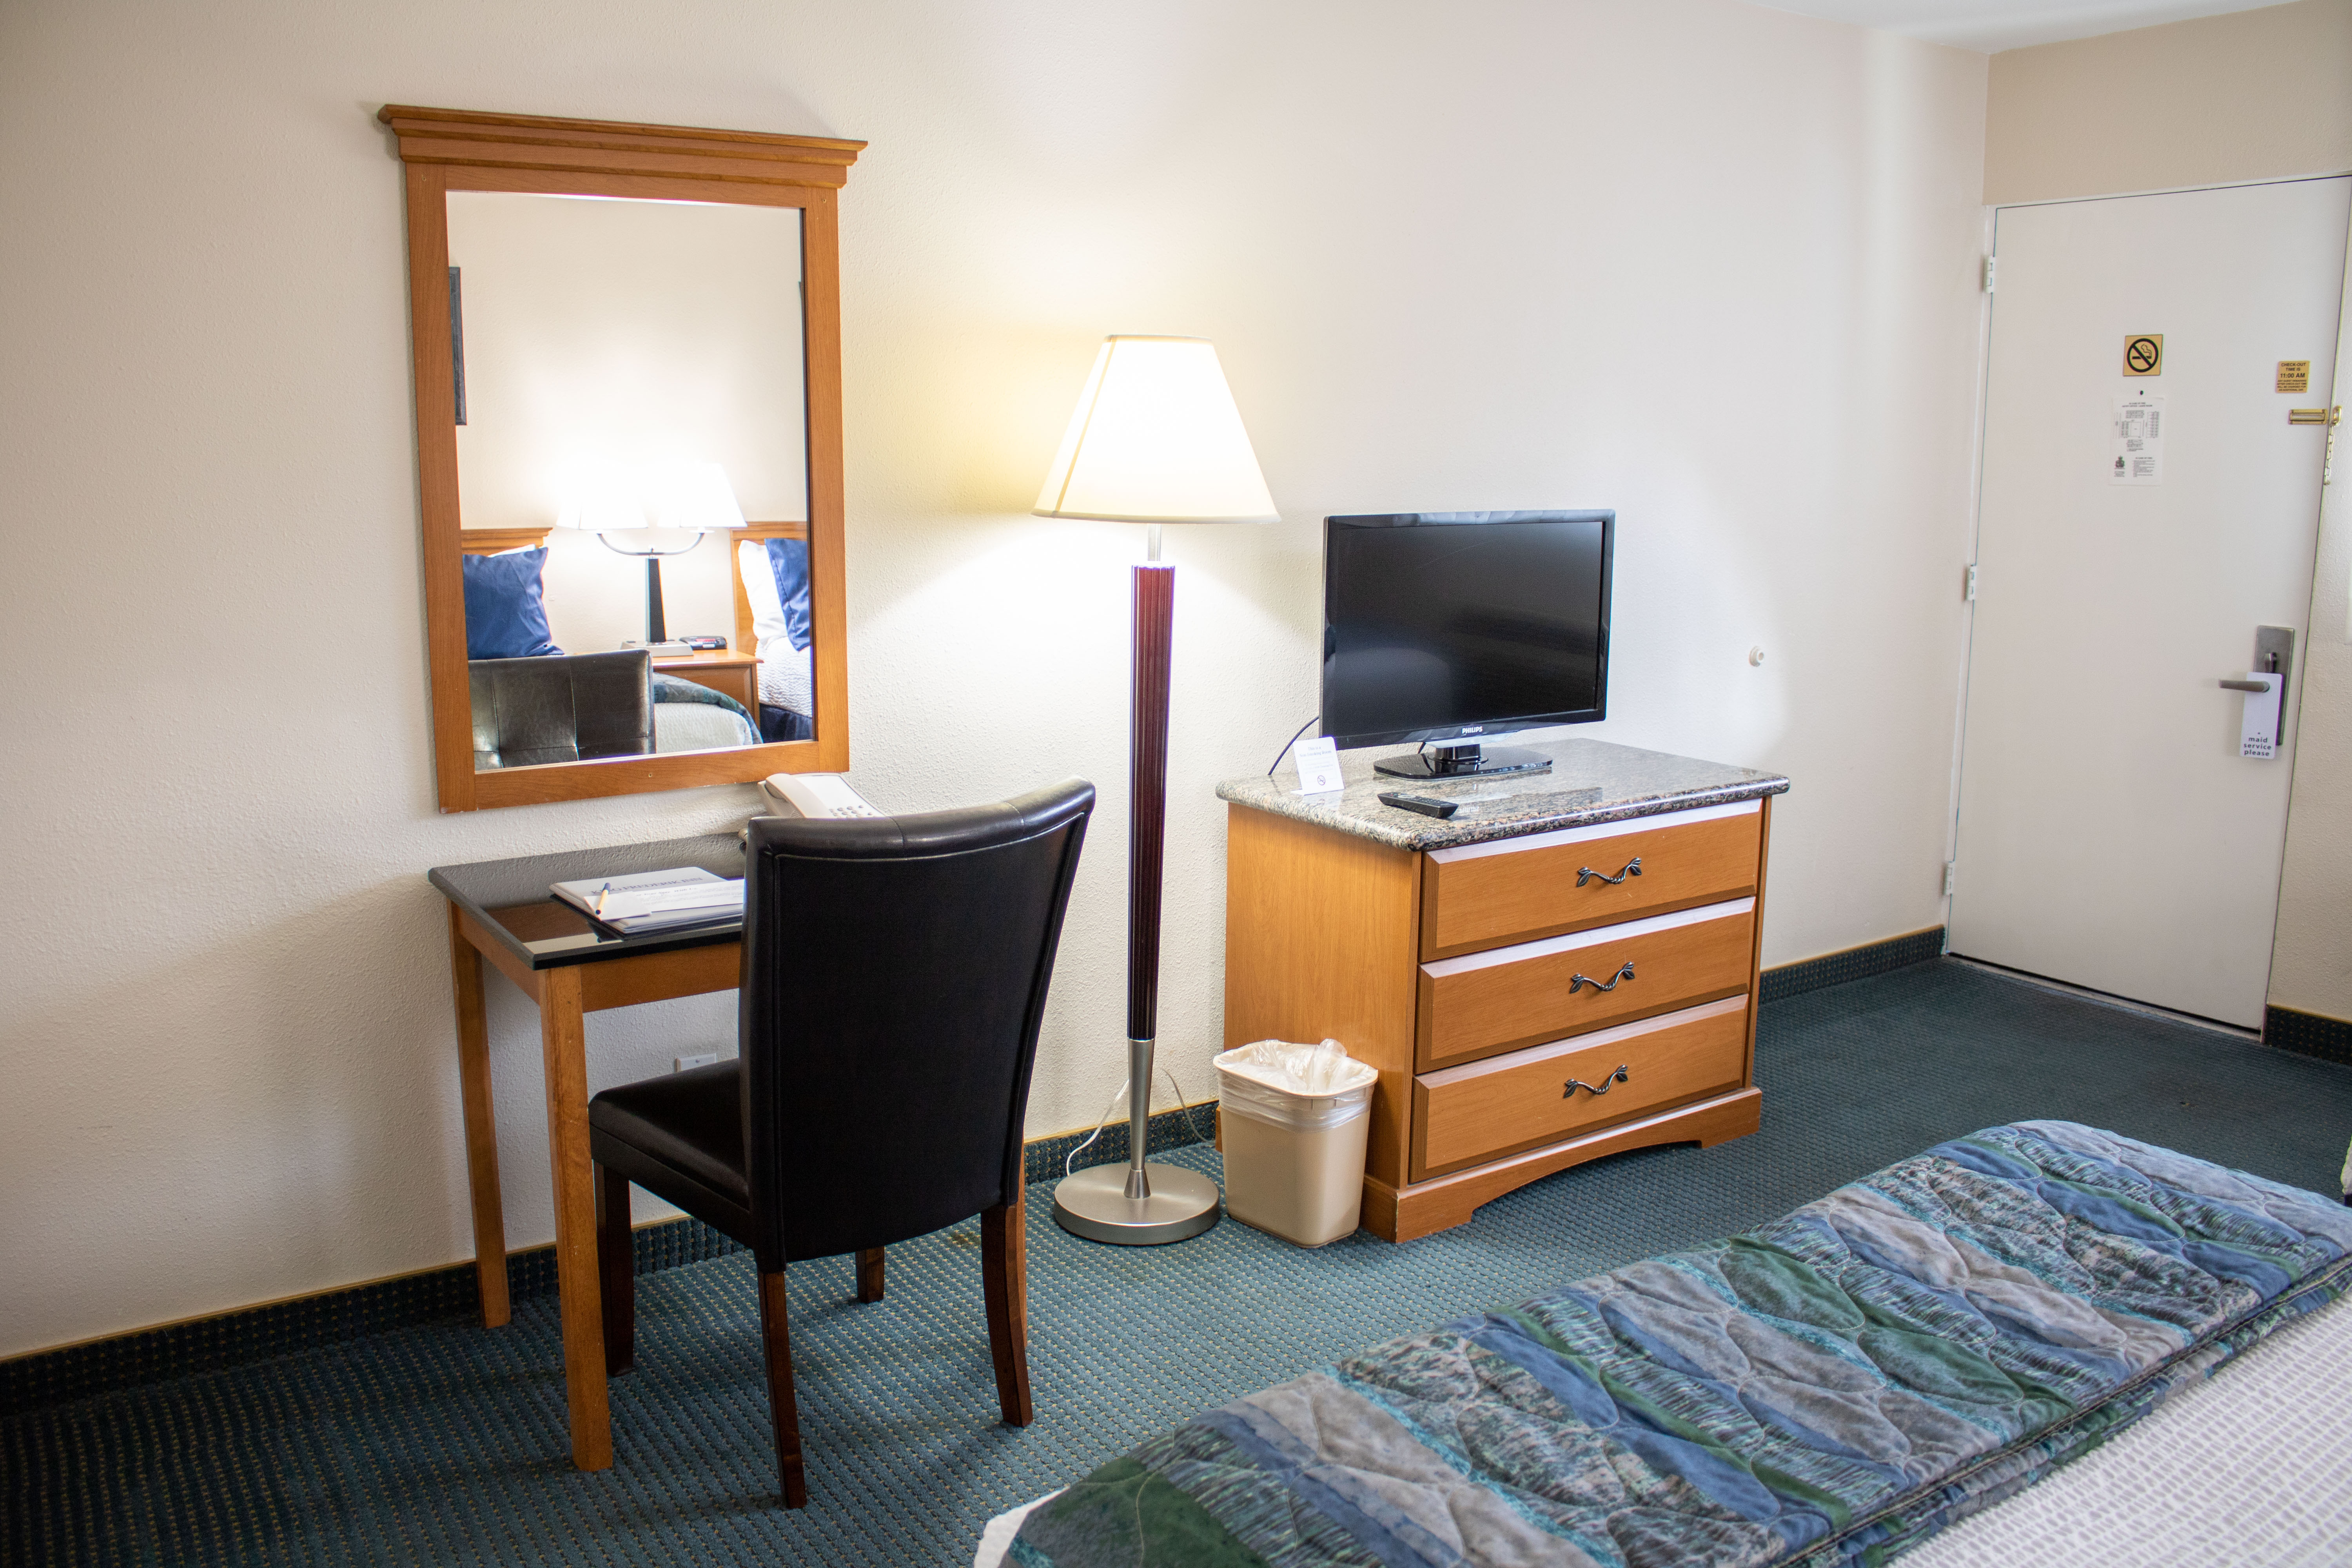 Room Pic 1